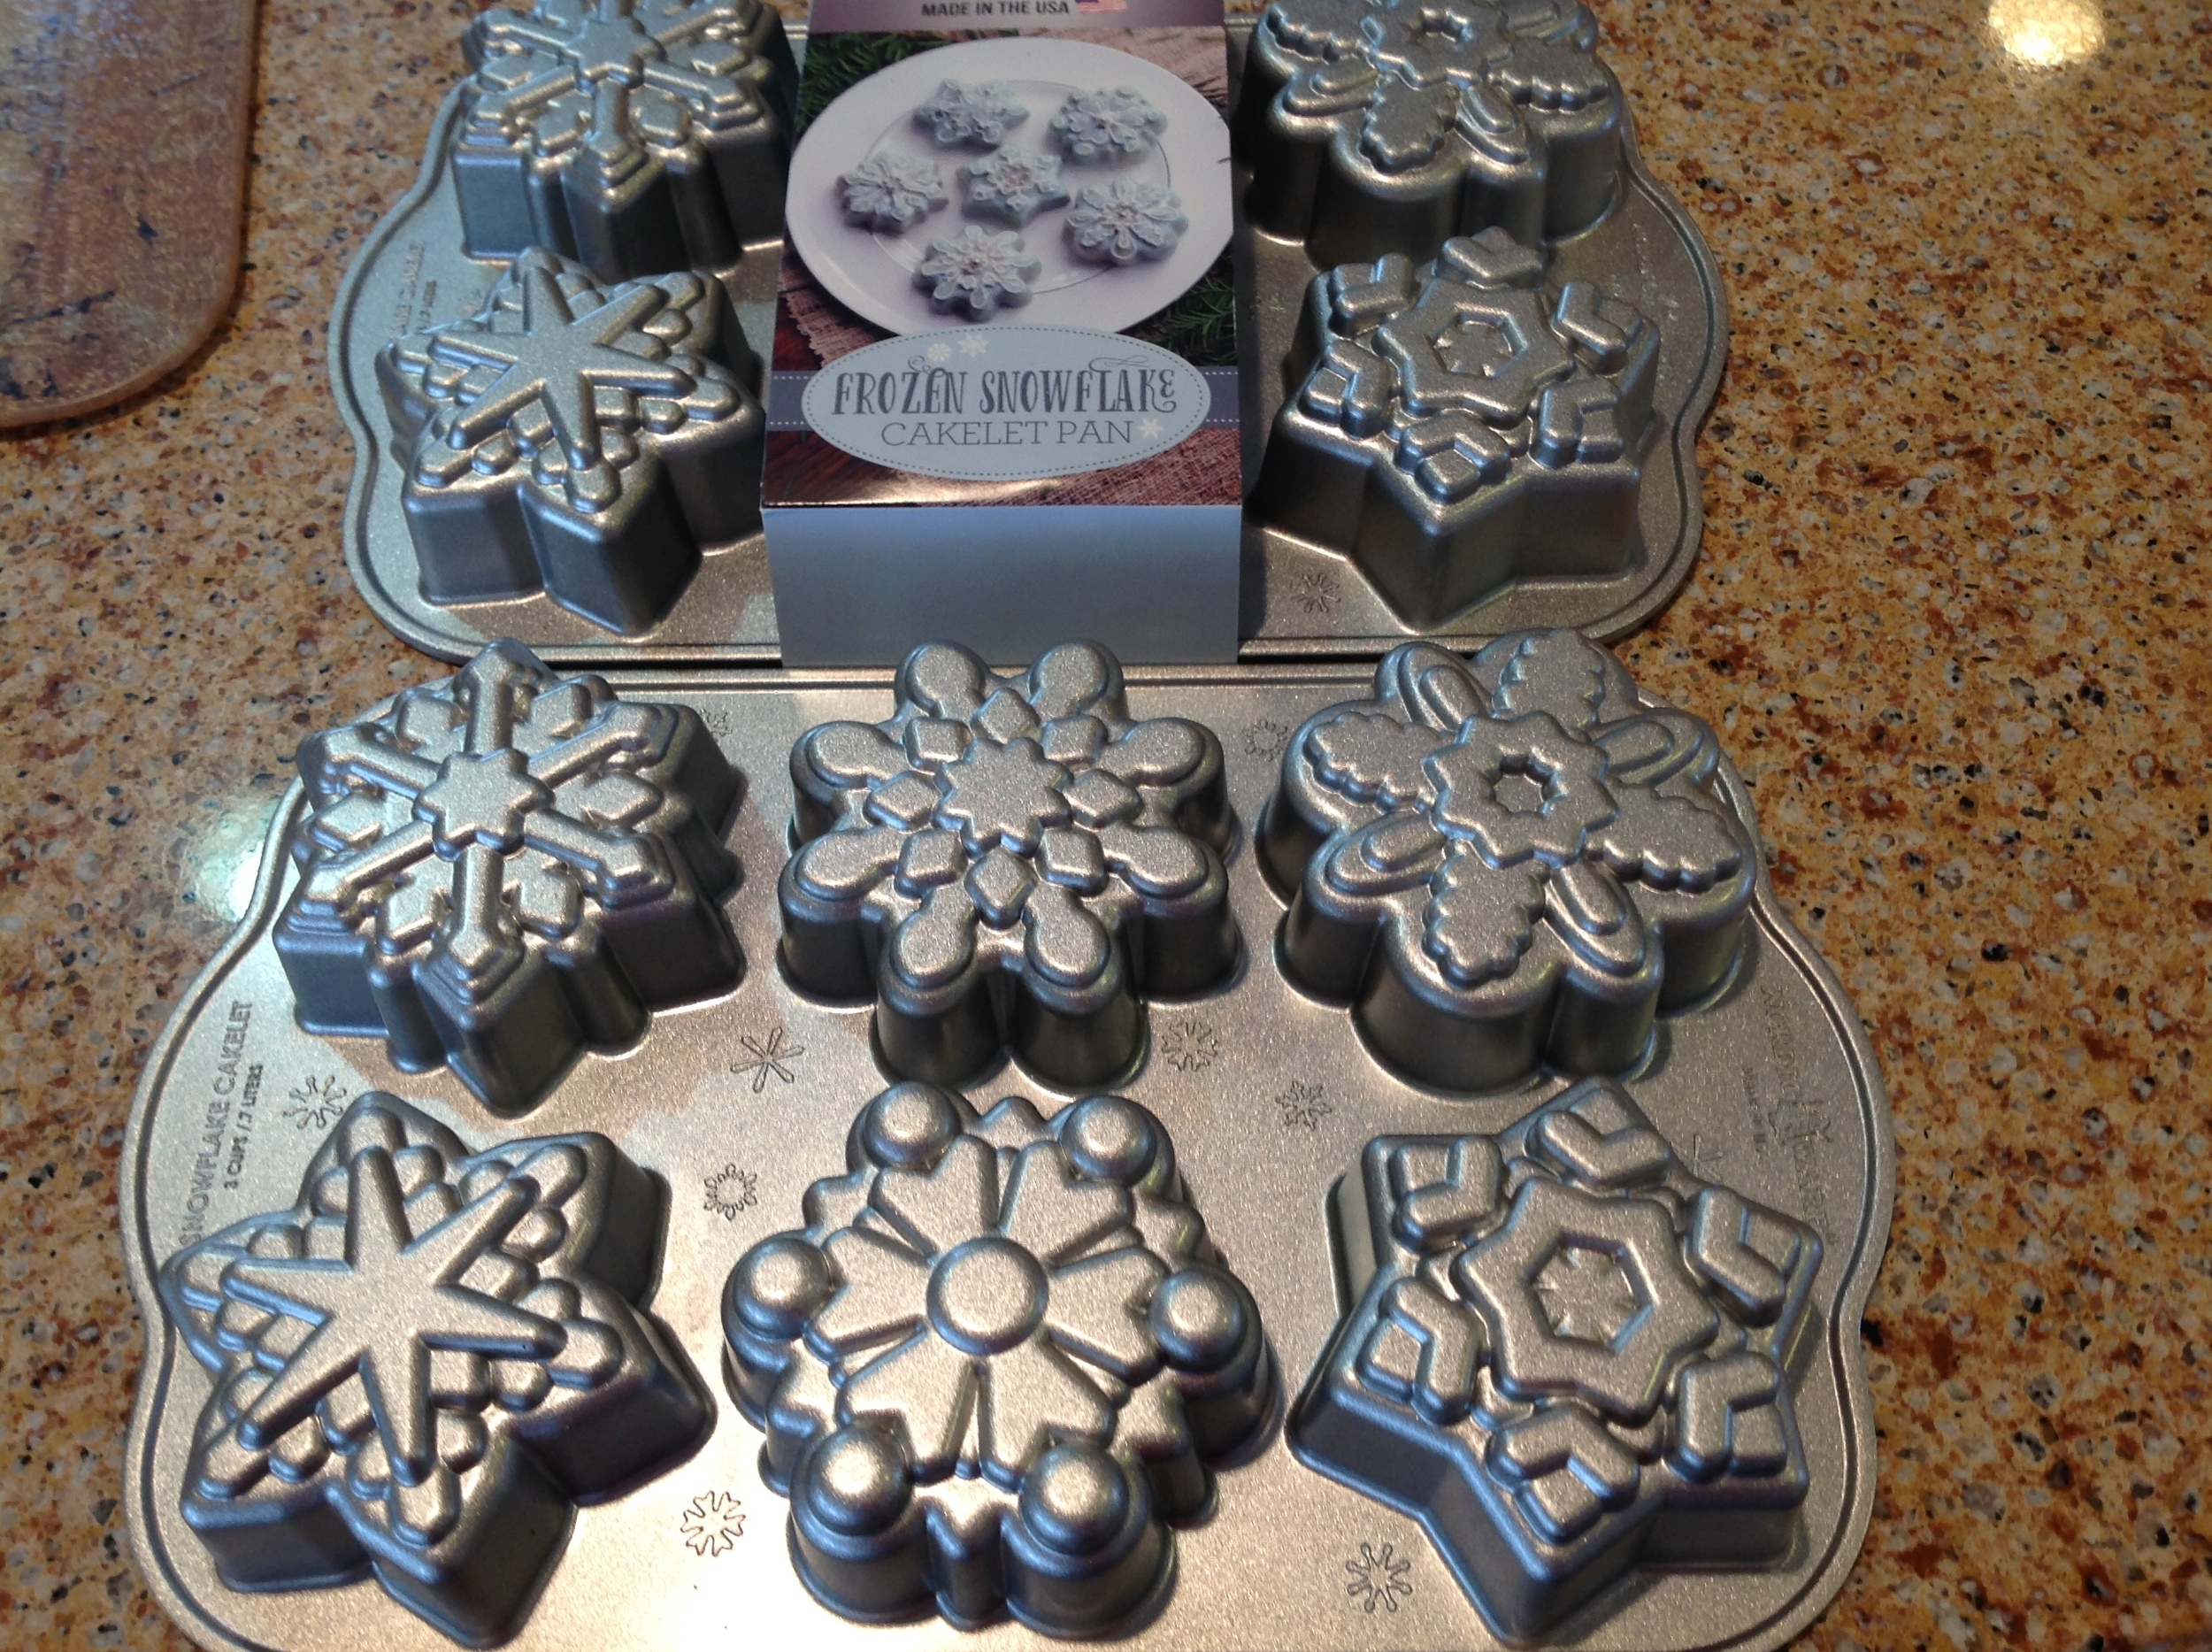 Frozen Snowflake Cakelet pans by NordicWare